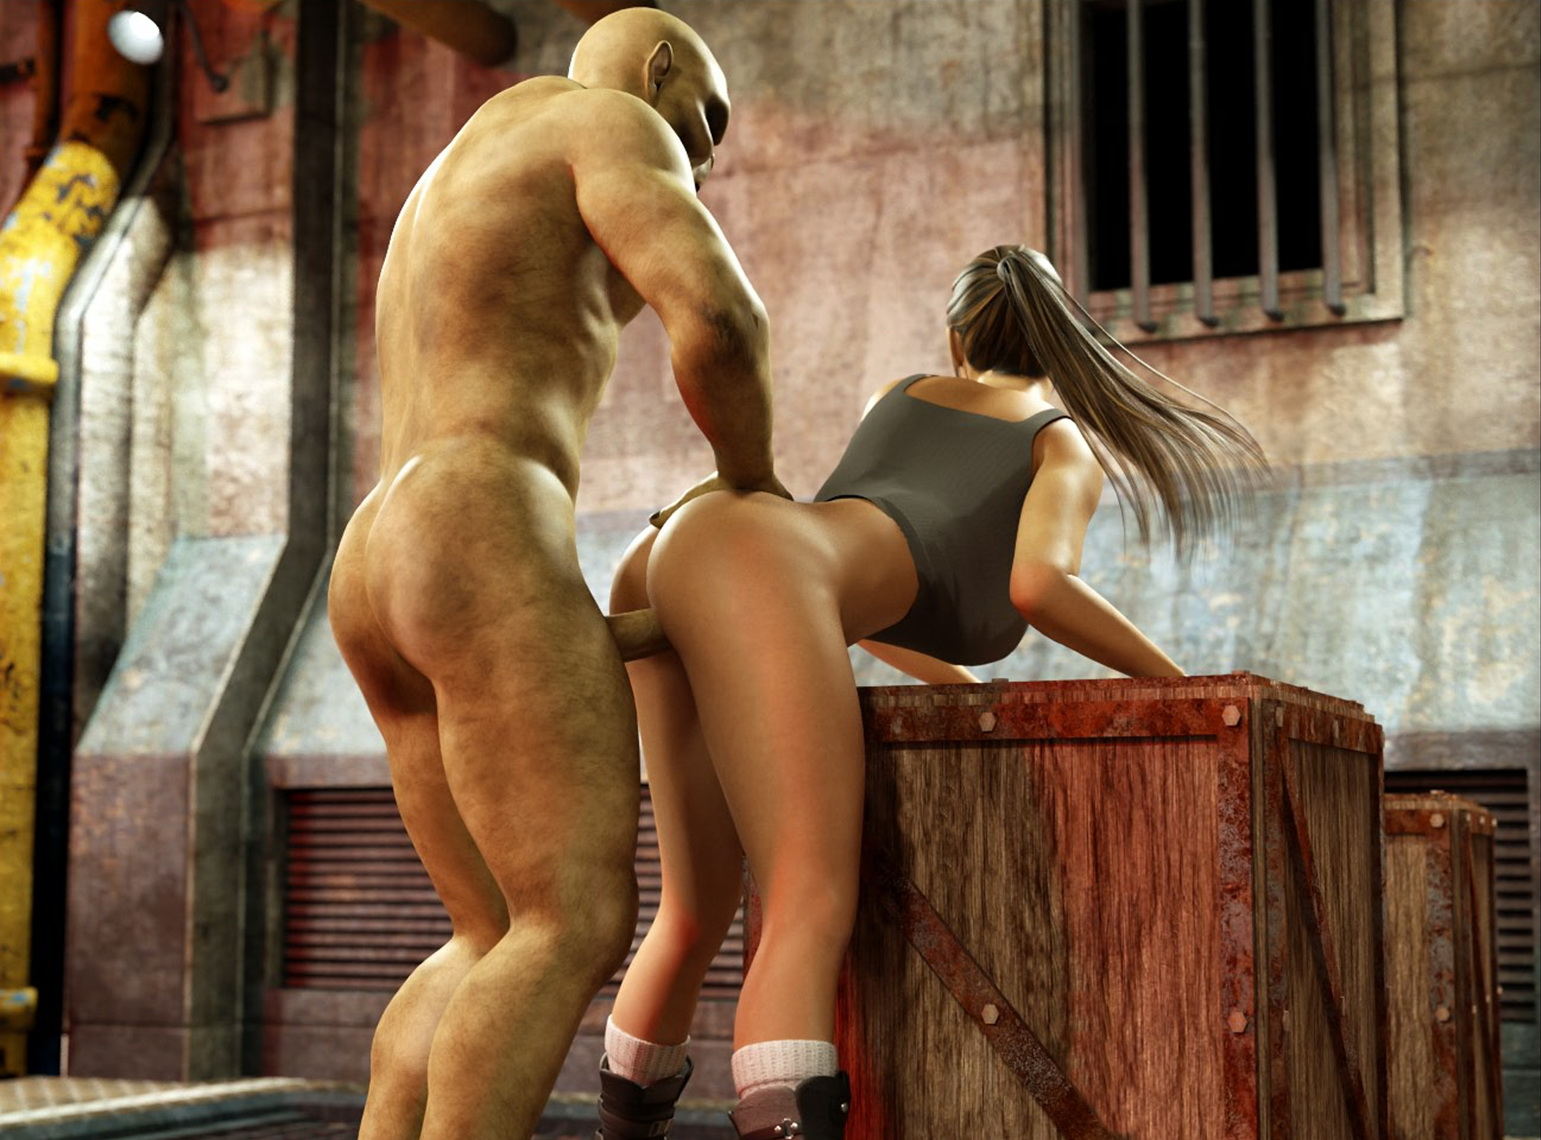 Lara croft fake sex pron photos